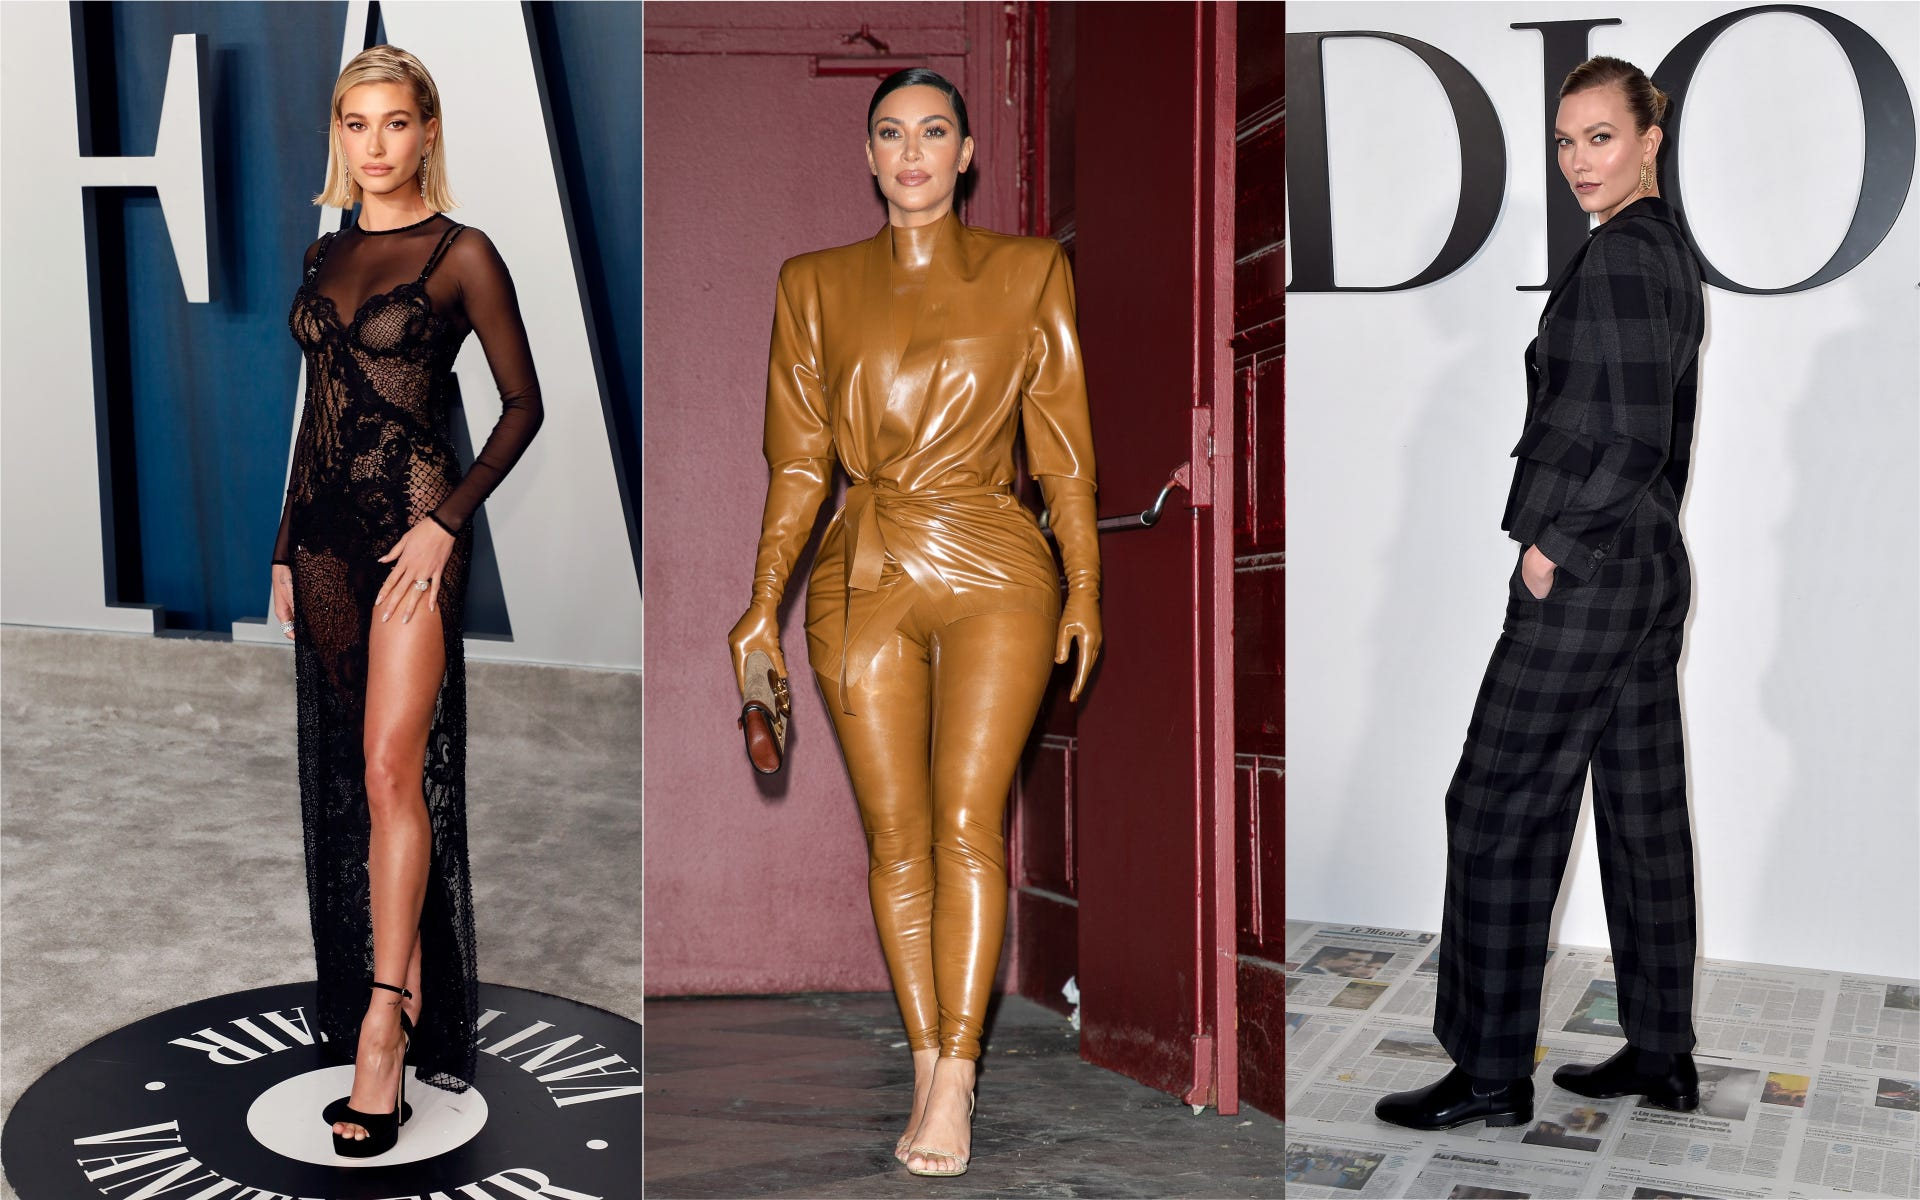 Kim Kardashian, Hailey Bieber, More Stars Hit the Virtual Runway for Coronavirus Relief